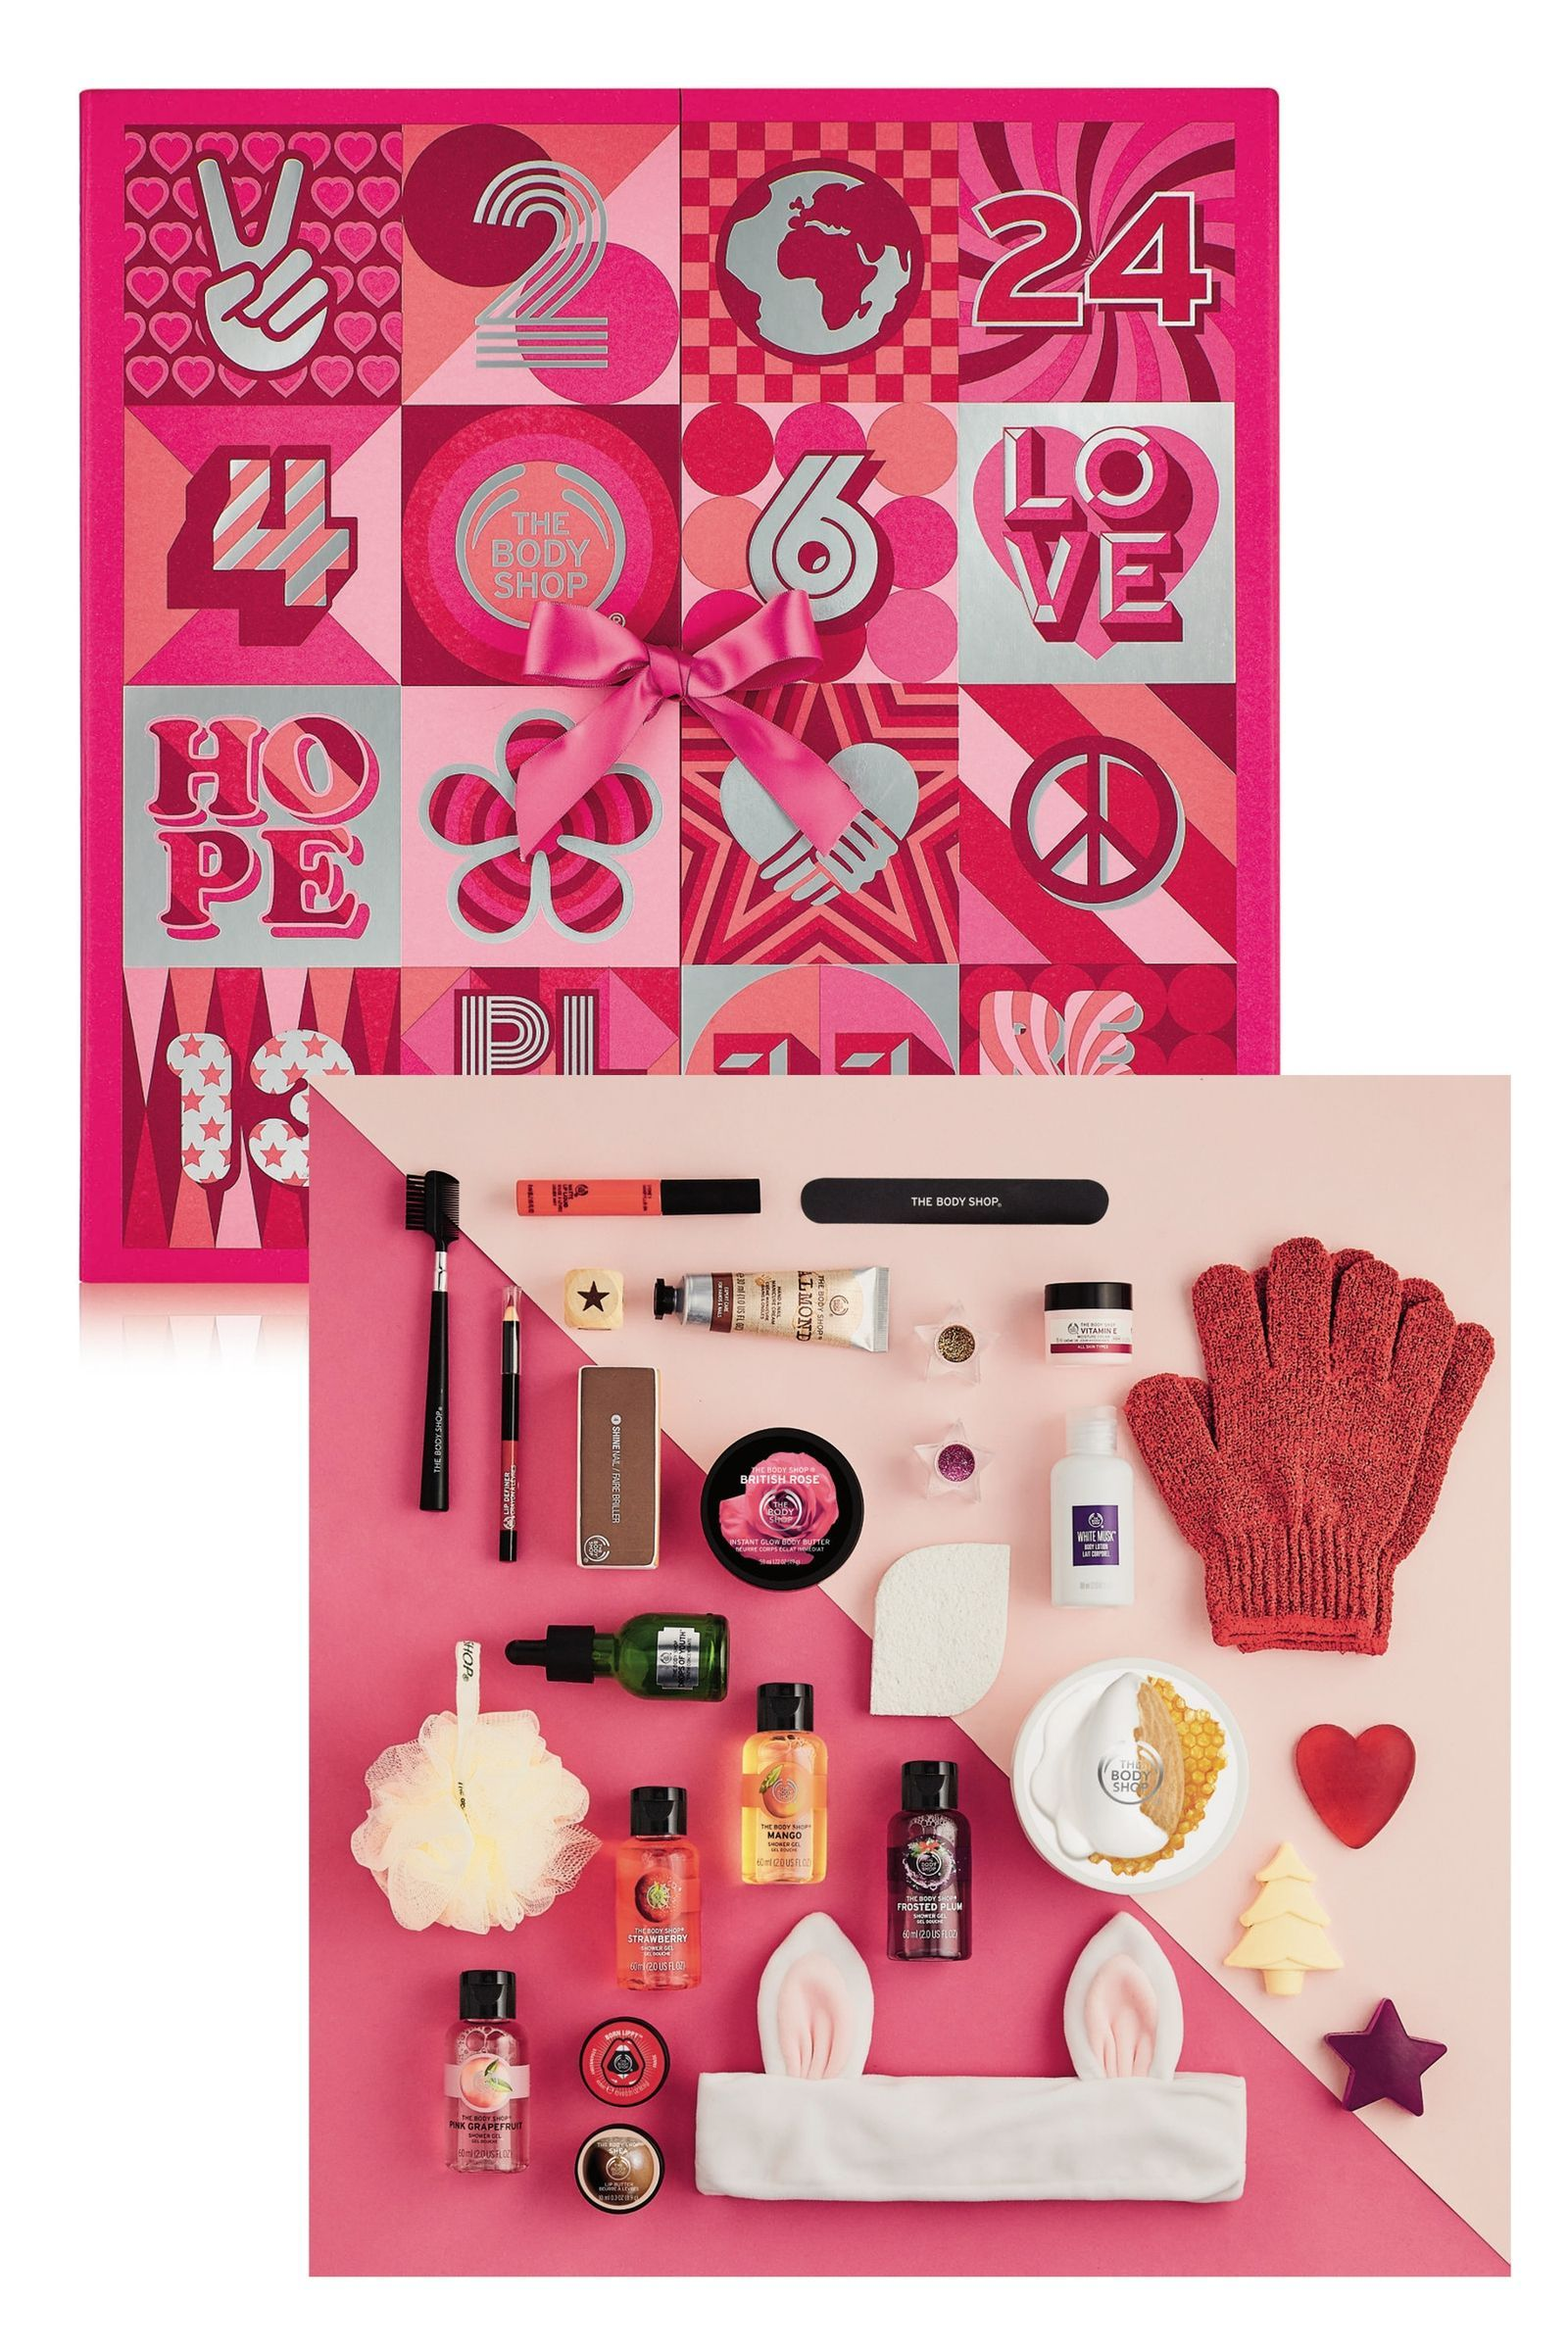 8 Advent Calendars For Beauty Lovers Beauty advent